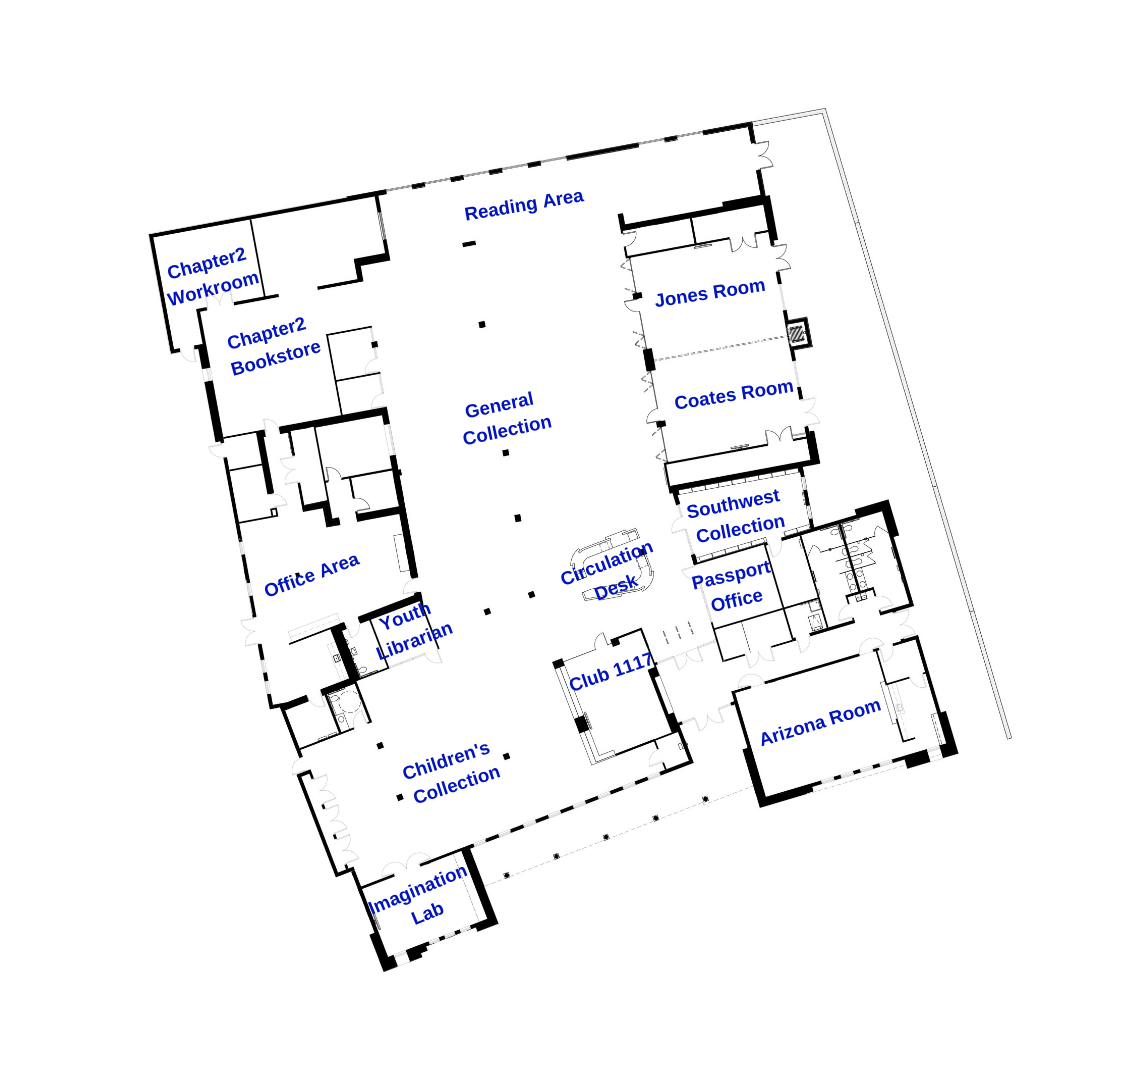 library layout map